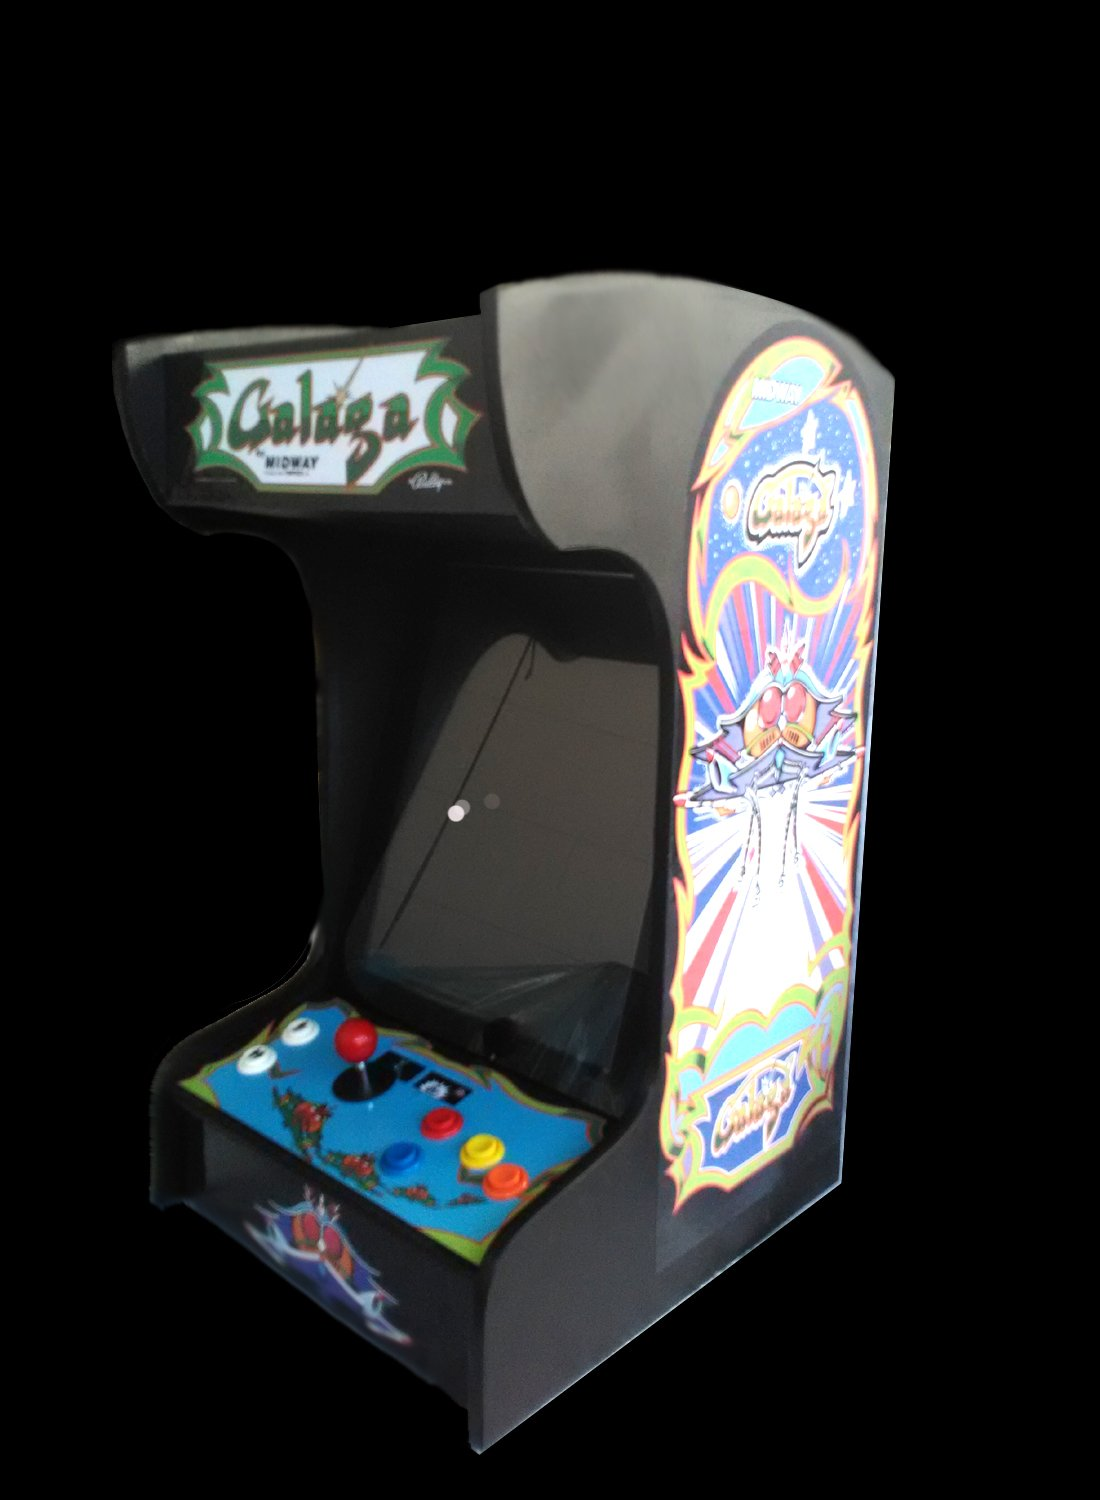 Retro Arcade Machine with 412 Games -Tabletop/Bartop - All The Classics -  Perfect for Man Caves, Bars and Game Rooms! (Black)